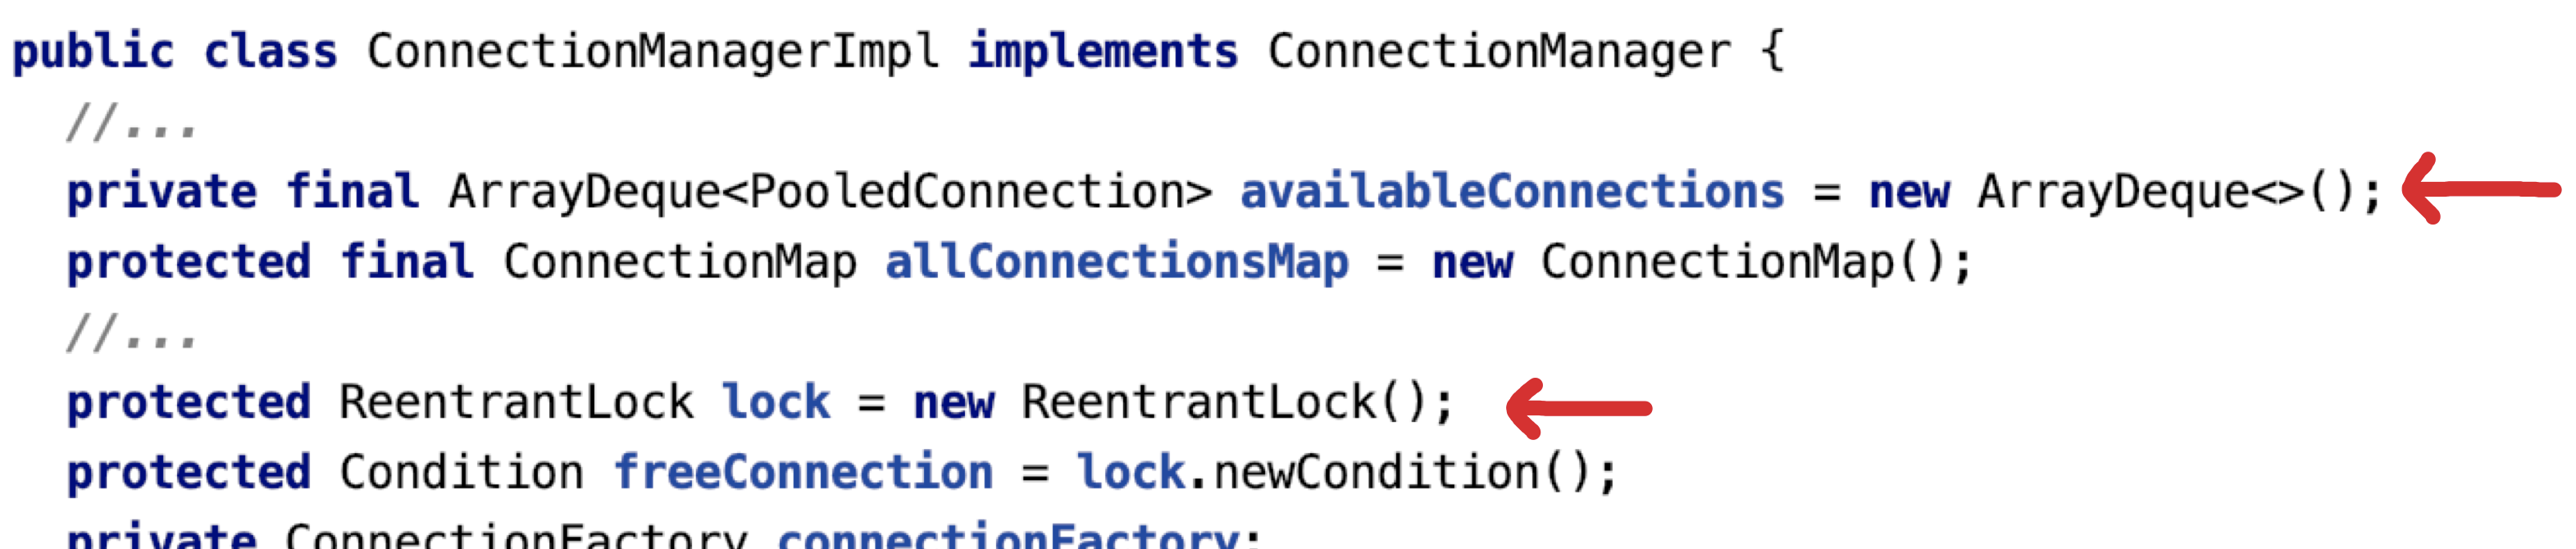 Figure 4: ConnectionManagerImpl - Code snippet of the variable definitions at the top of the ConnectionManagerImpl class. Two arrows highlight the definition of an ArrayDeque of PooledConnection to hold the available connections, and a ReentrantLock.